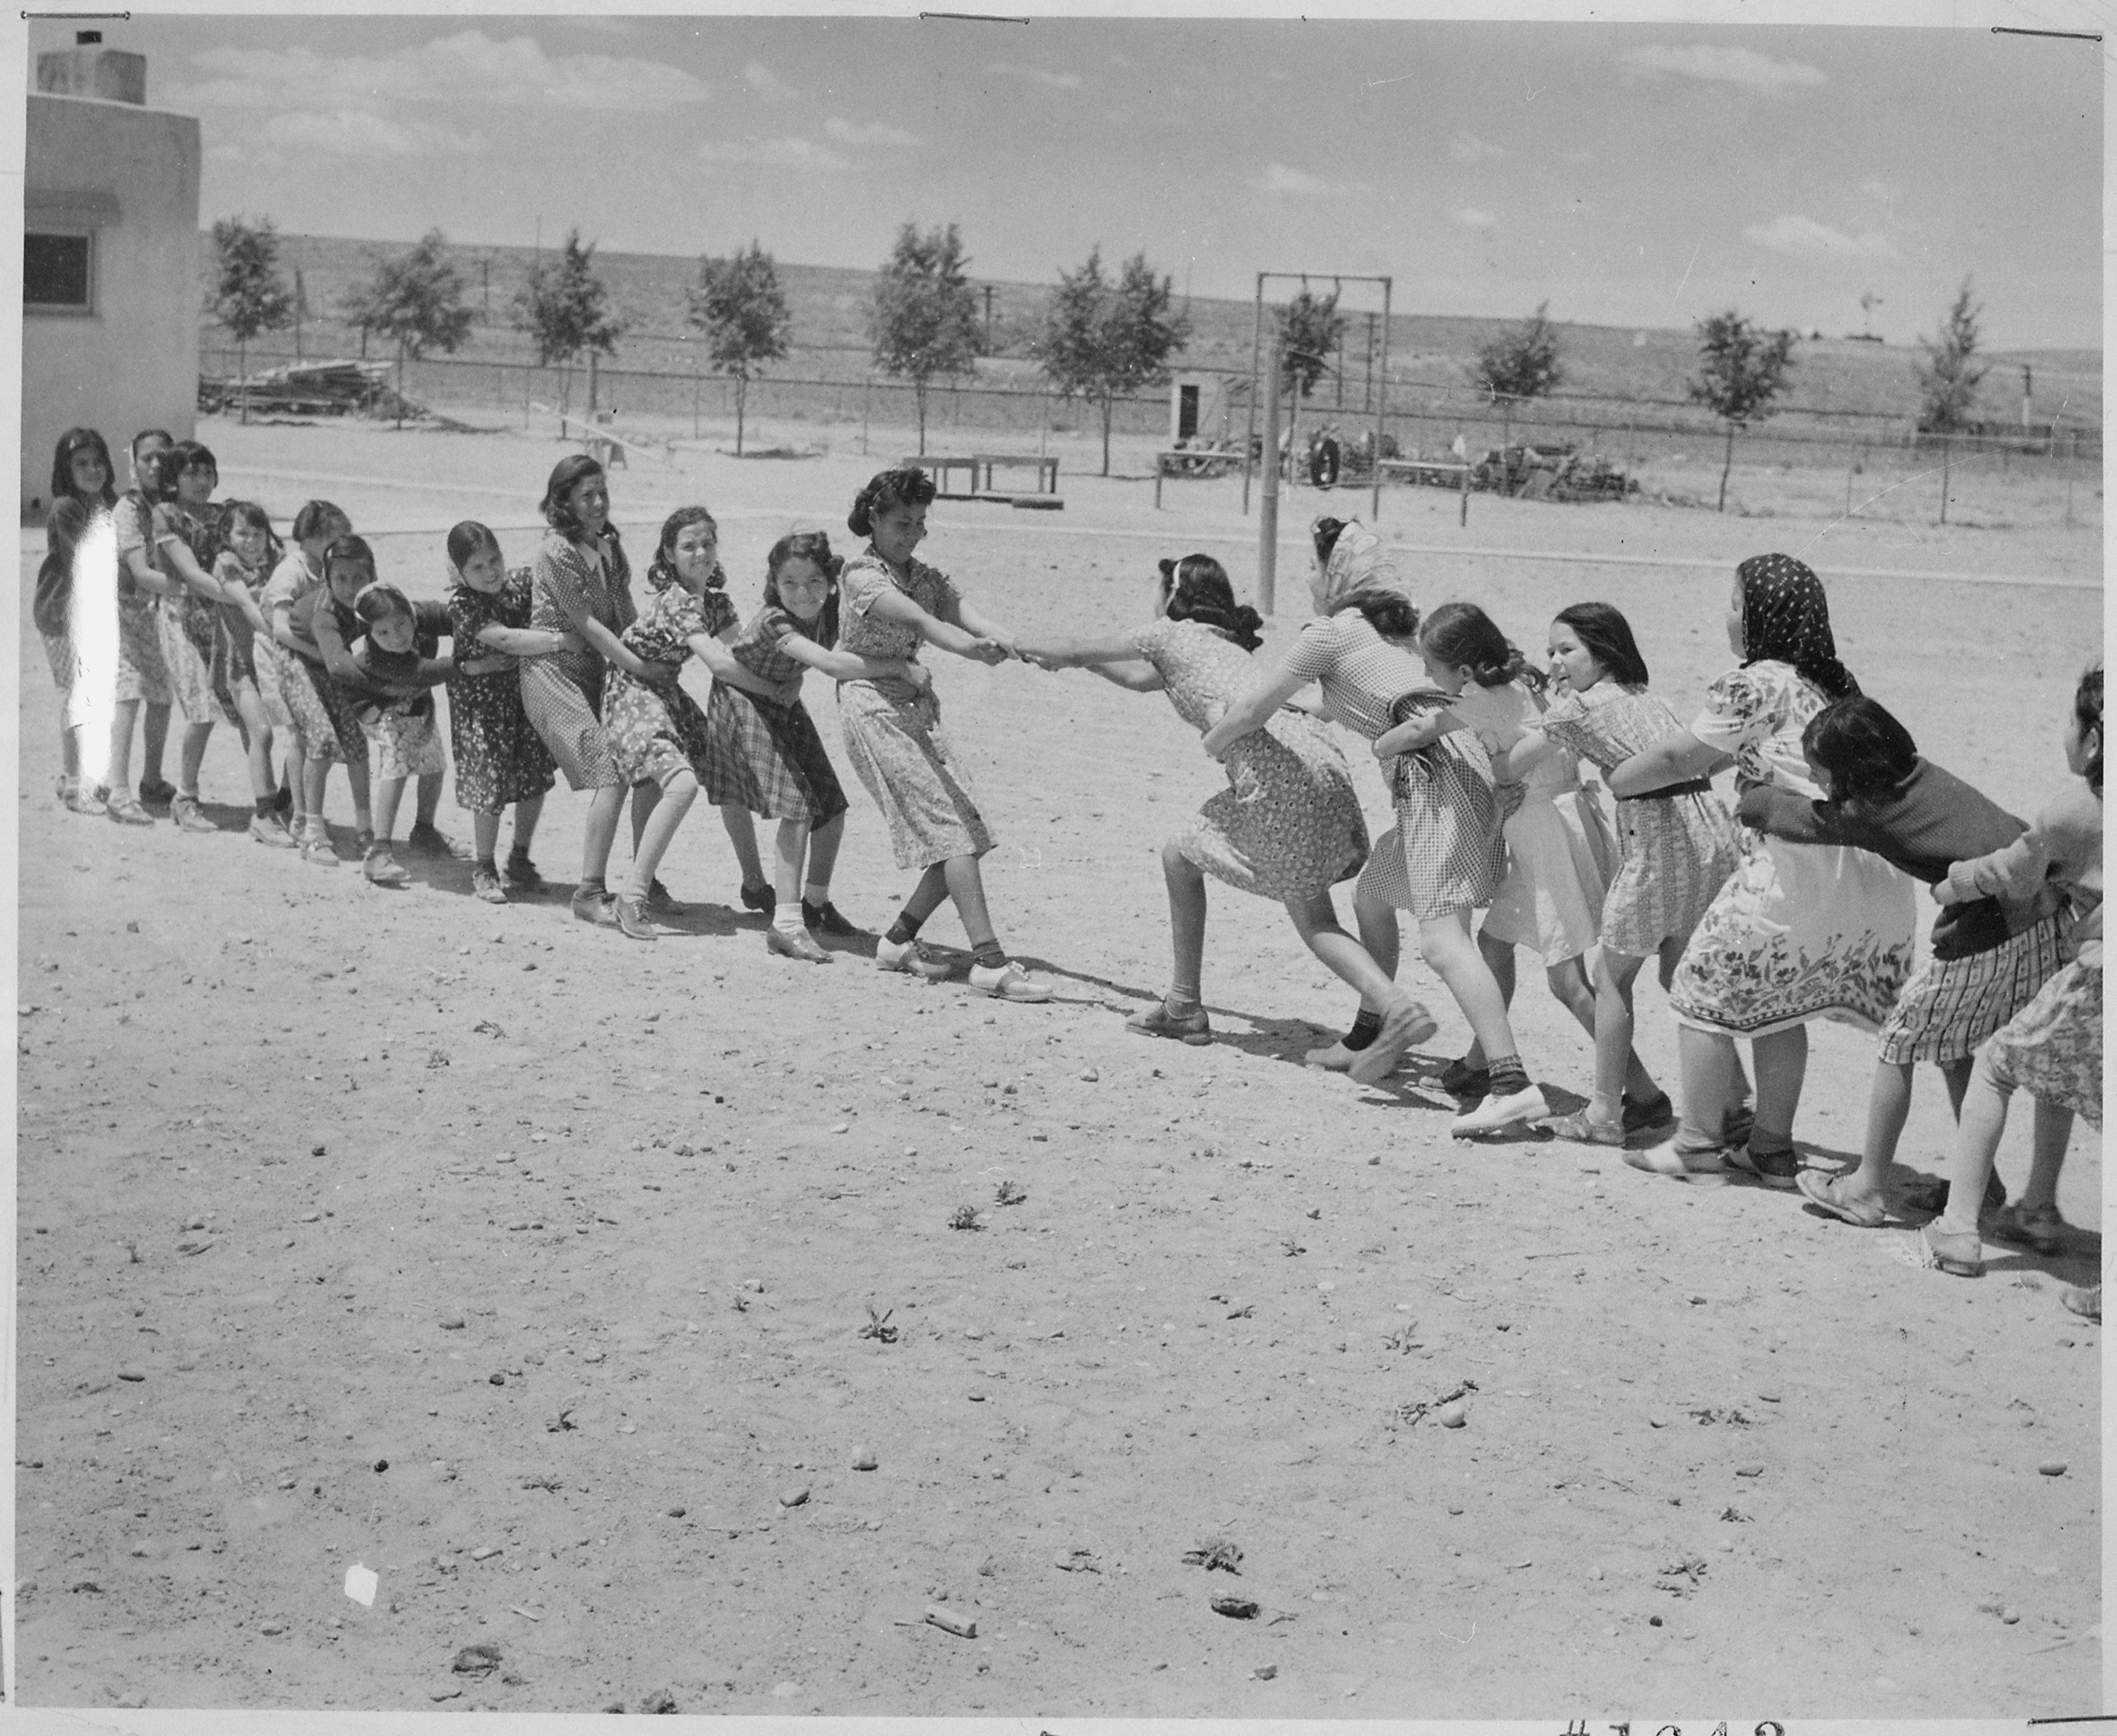 Girls at isleta day school in a tug of war  albuquerque  new mexico  1940   nara   519167